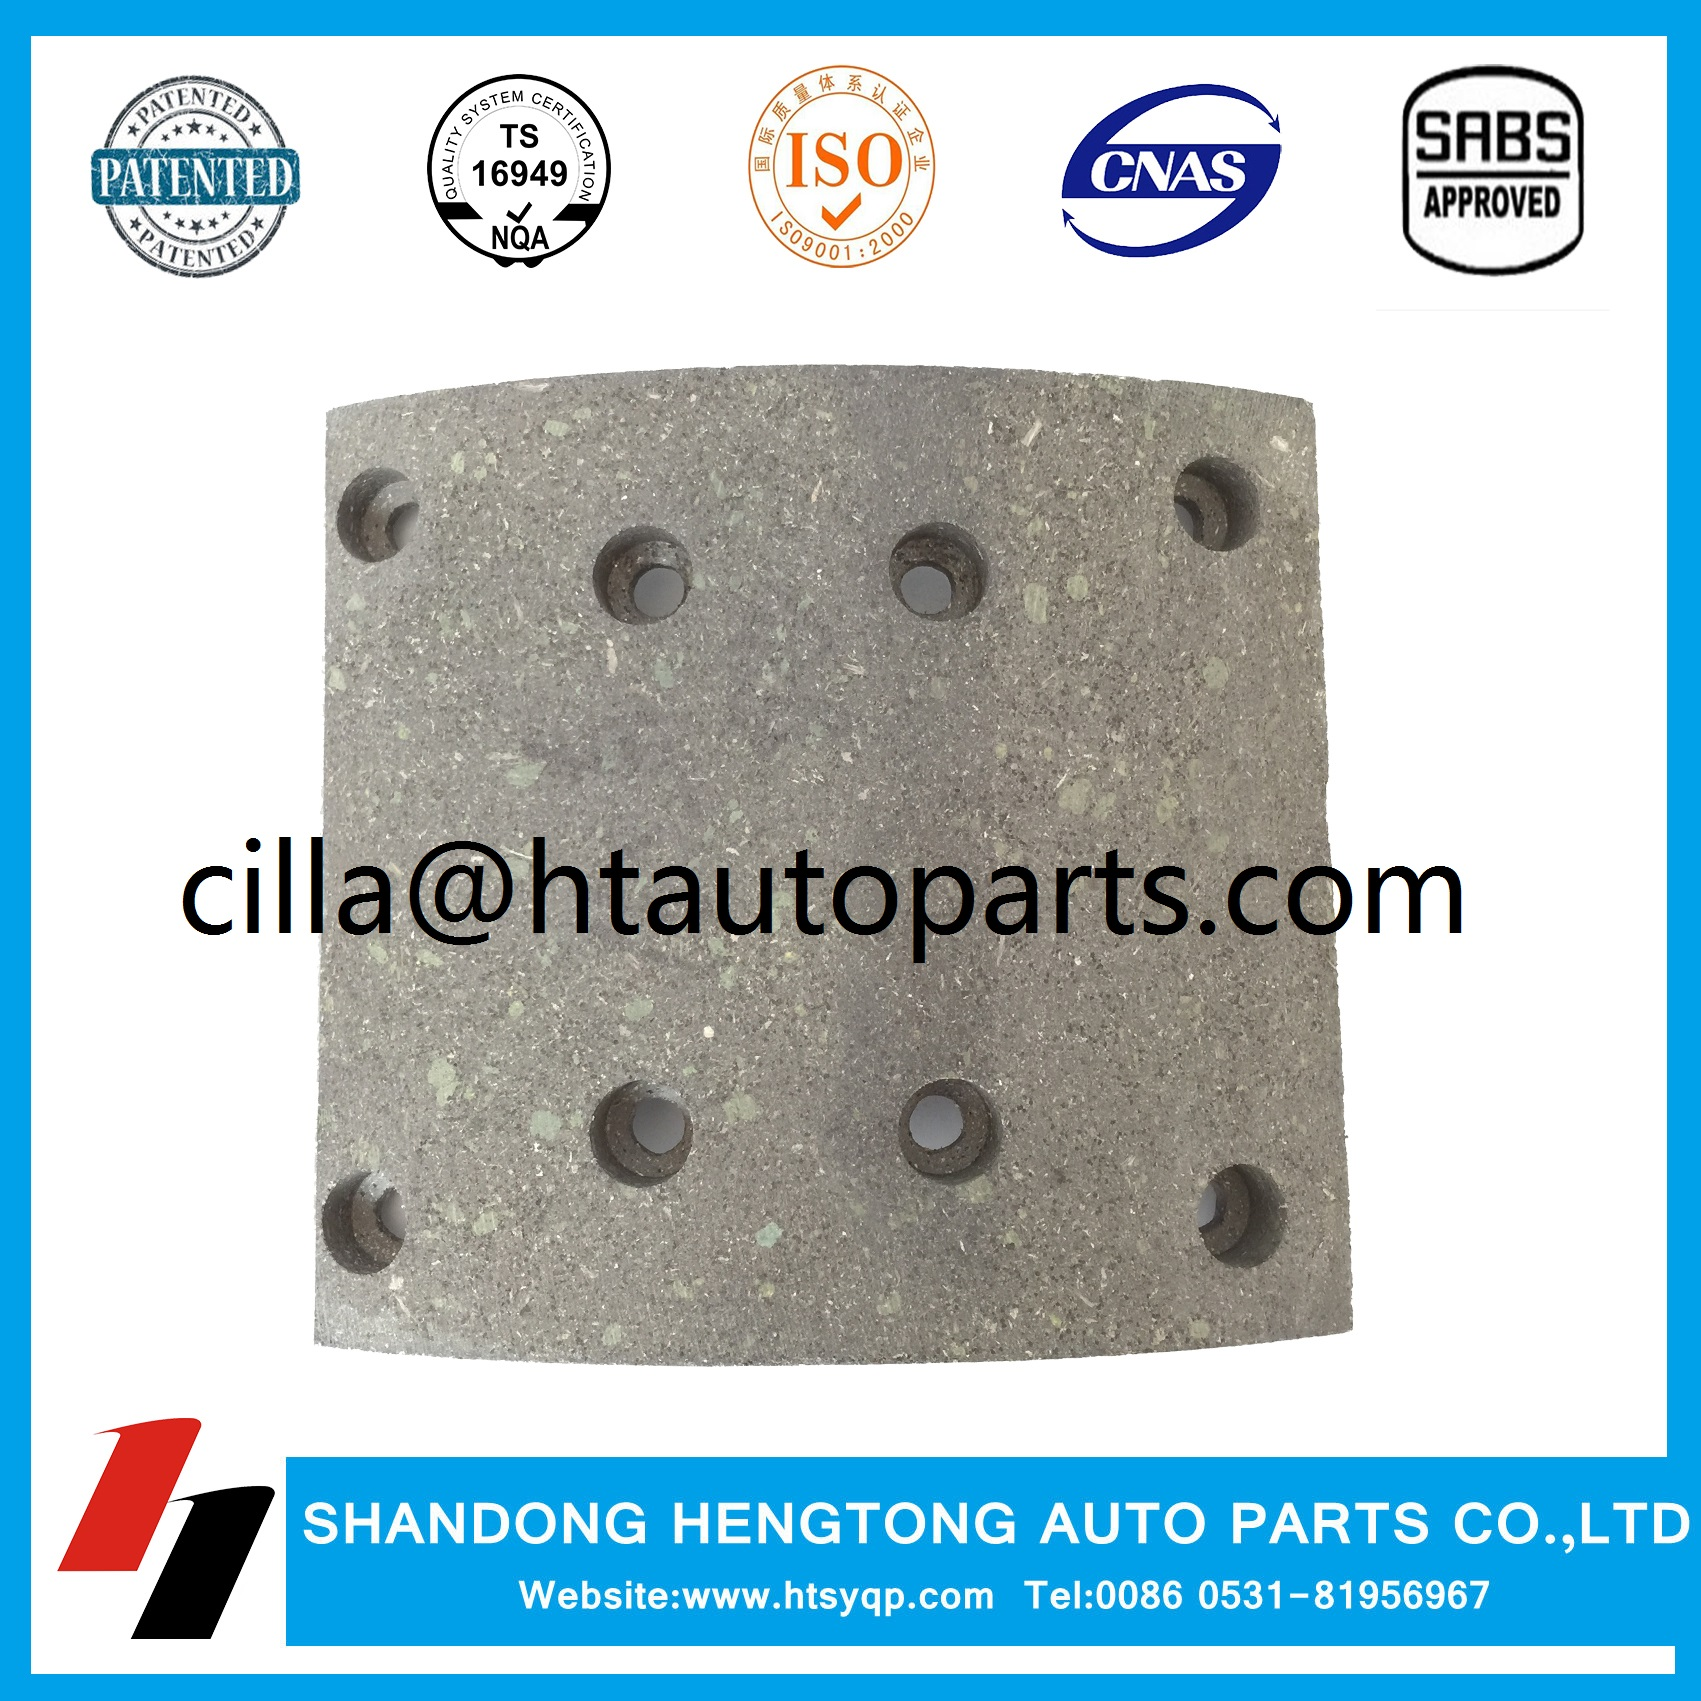 Brake lining WVA19486 with rivets for MAN/Mercedes/Renault/Steyr brake system